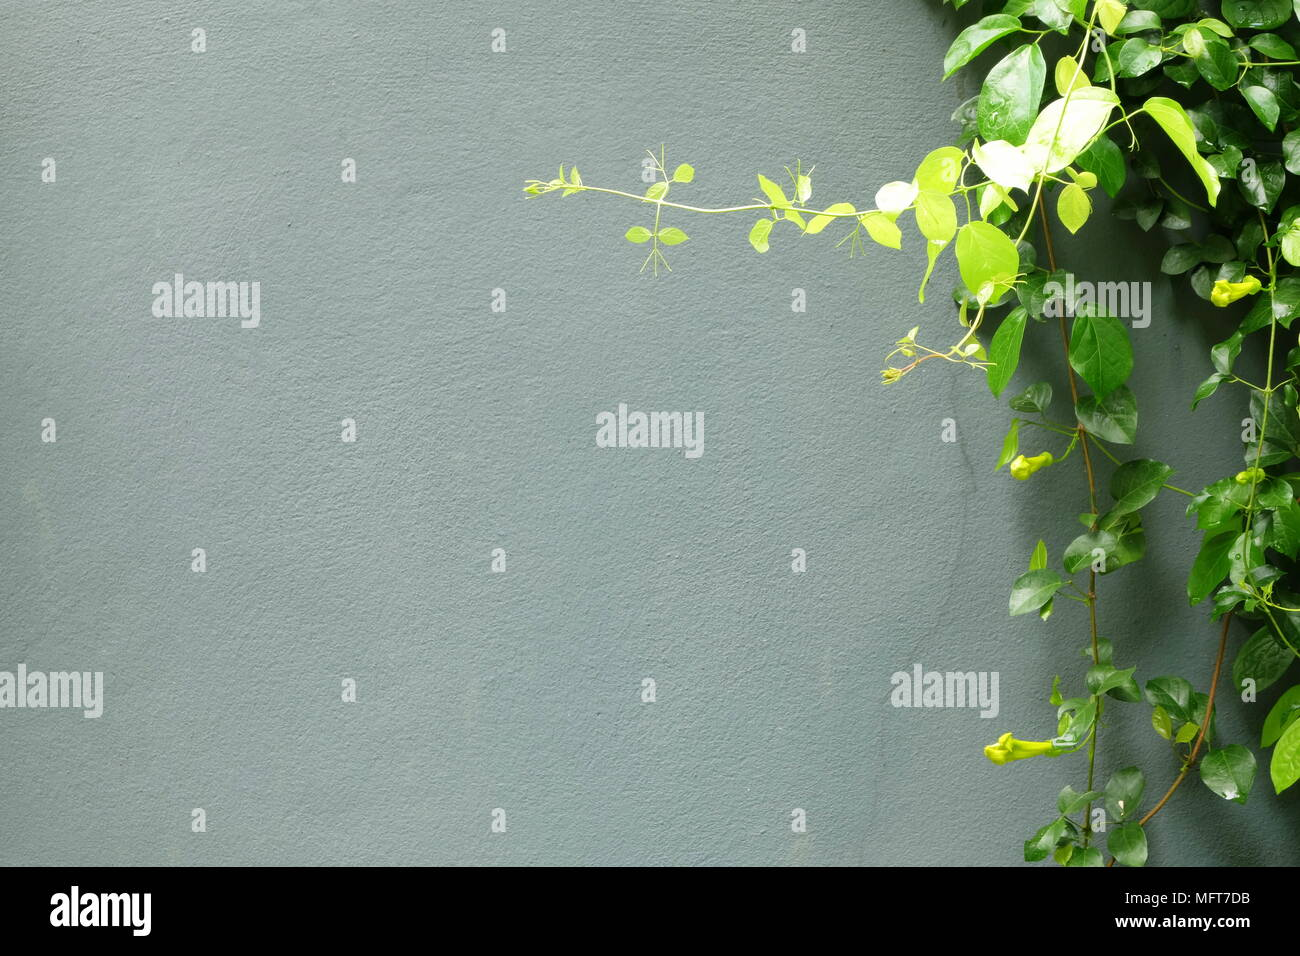 Leaves with Concrete Background. - Stock Image